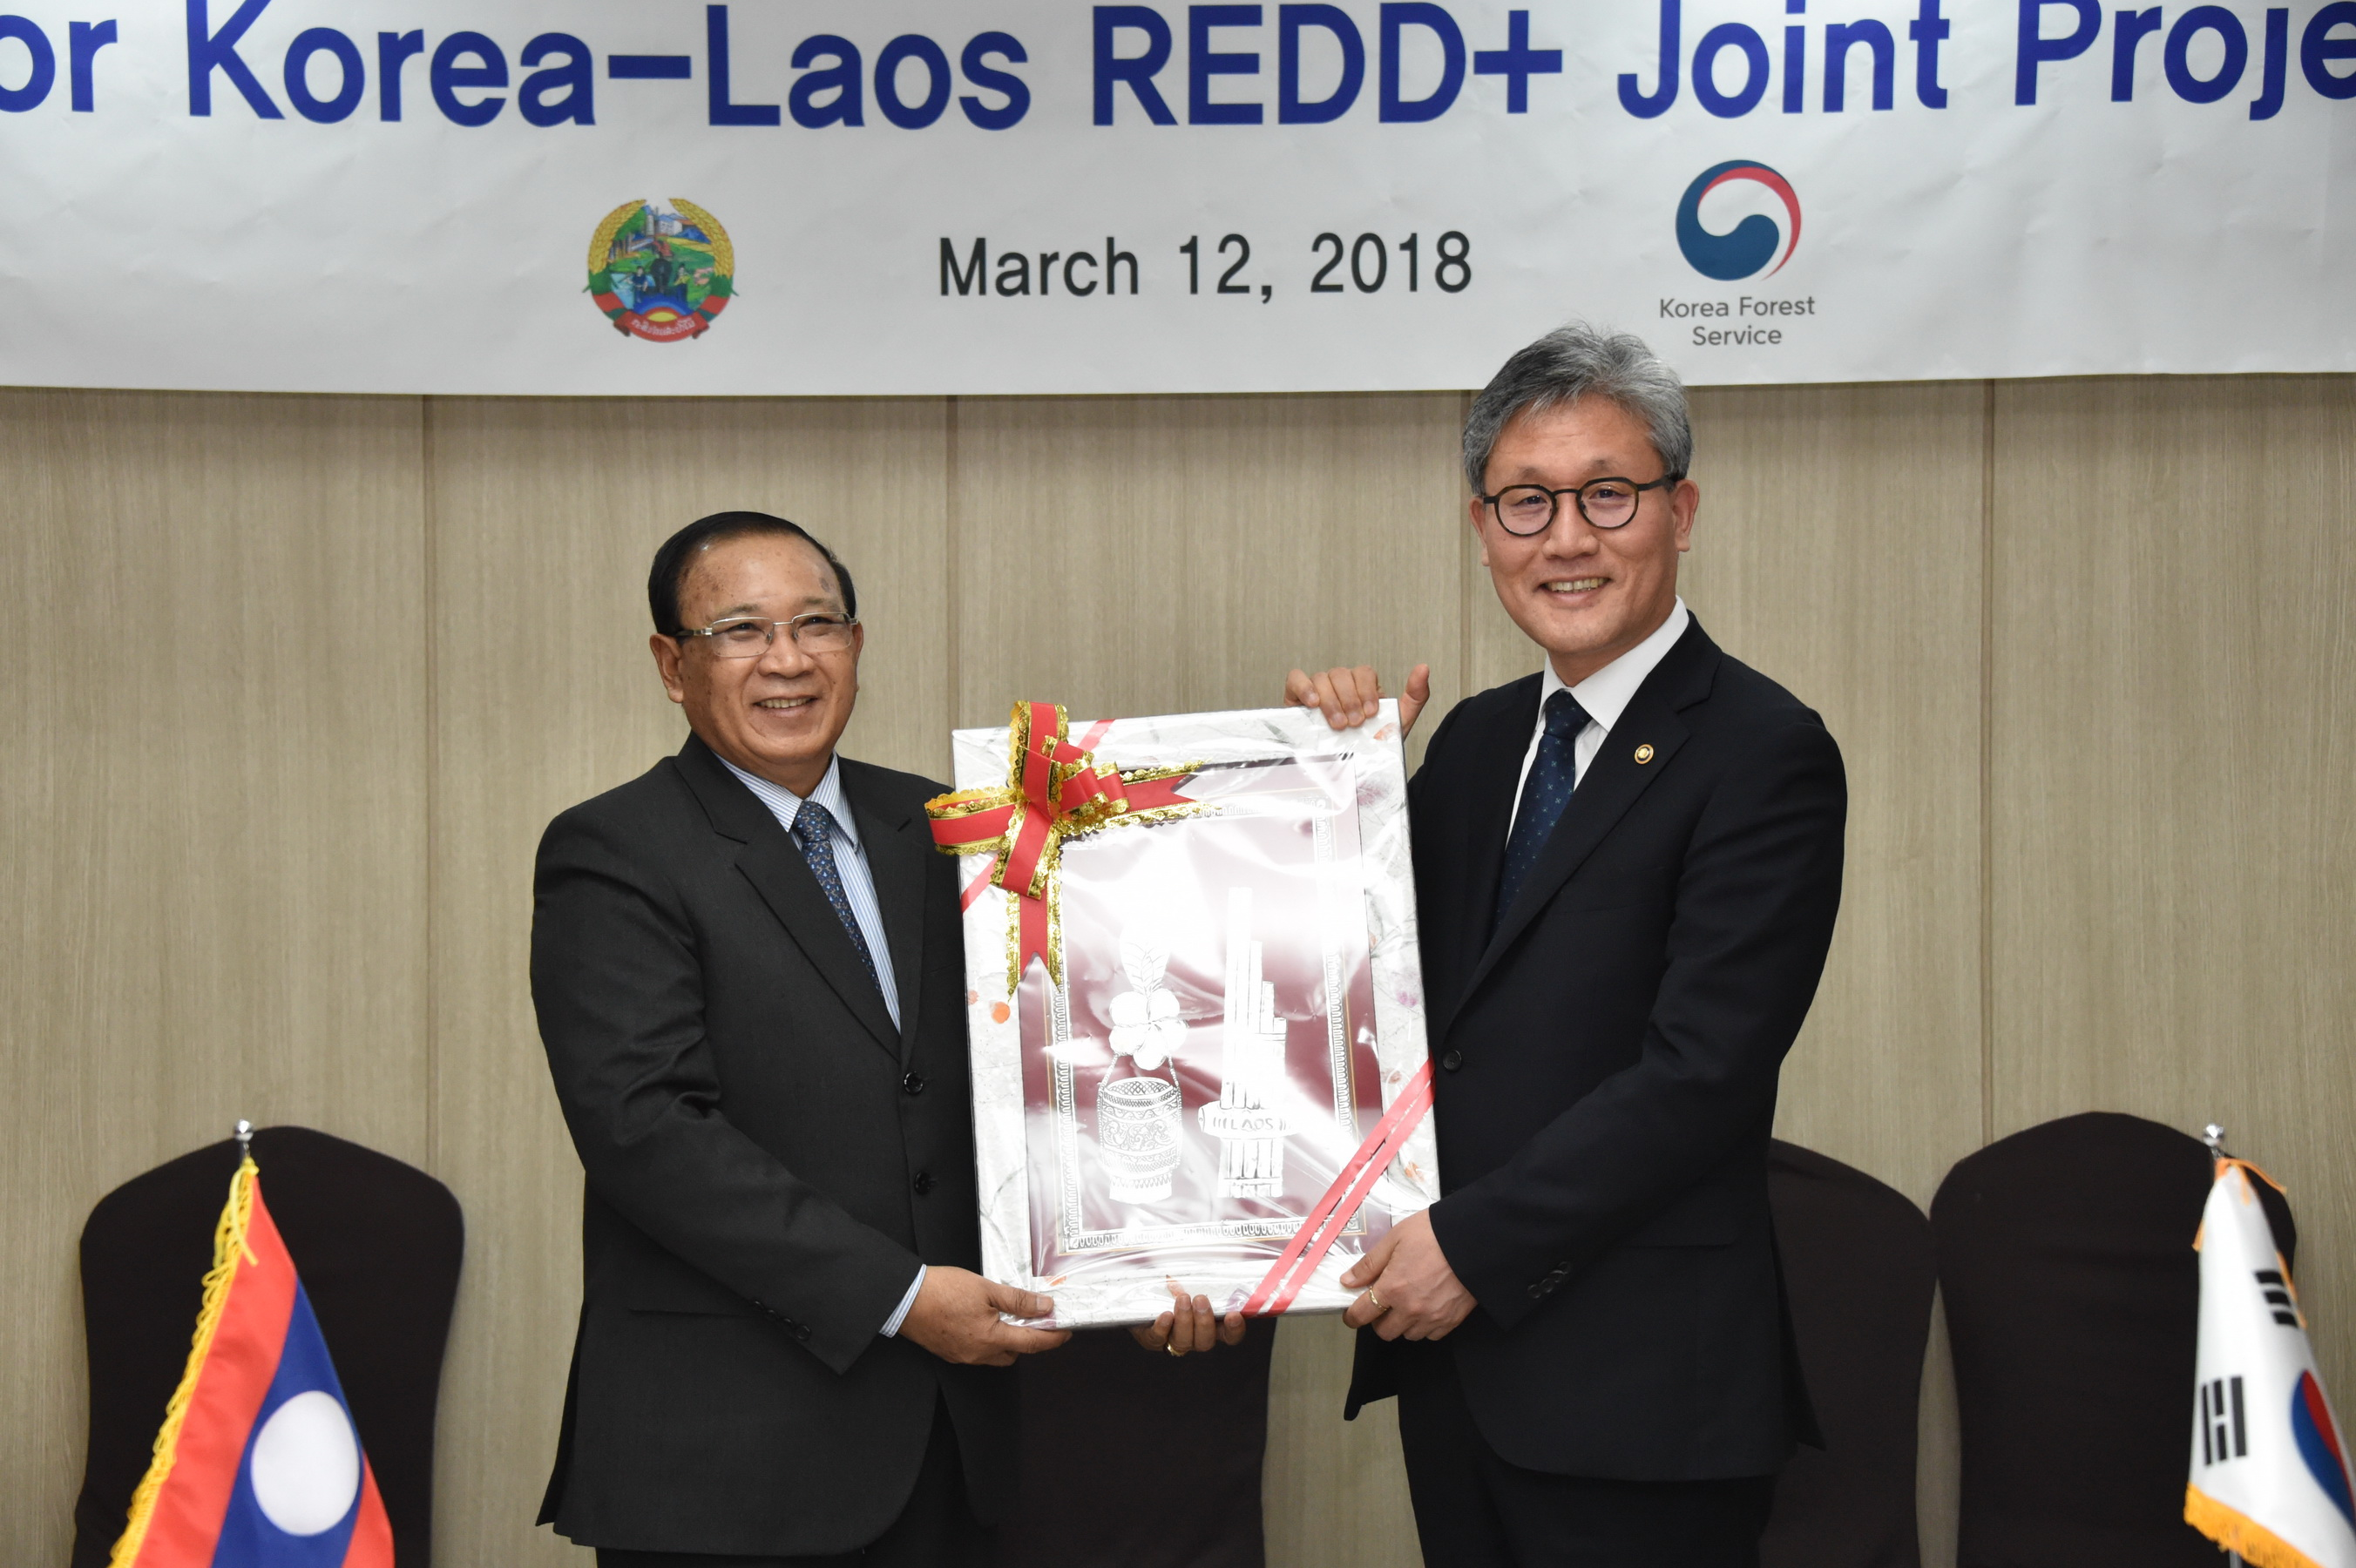 MOU signing ceremony for Korea-Laos REDD+ Project